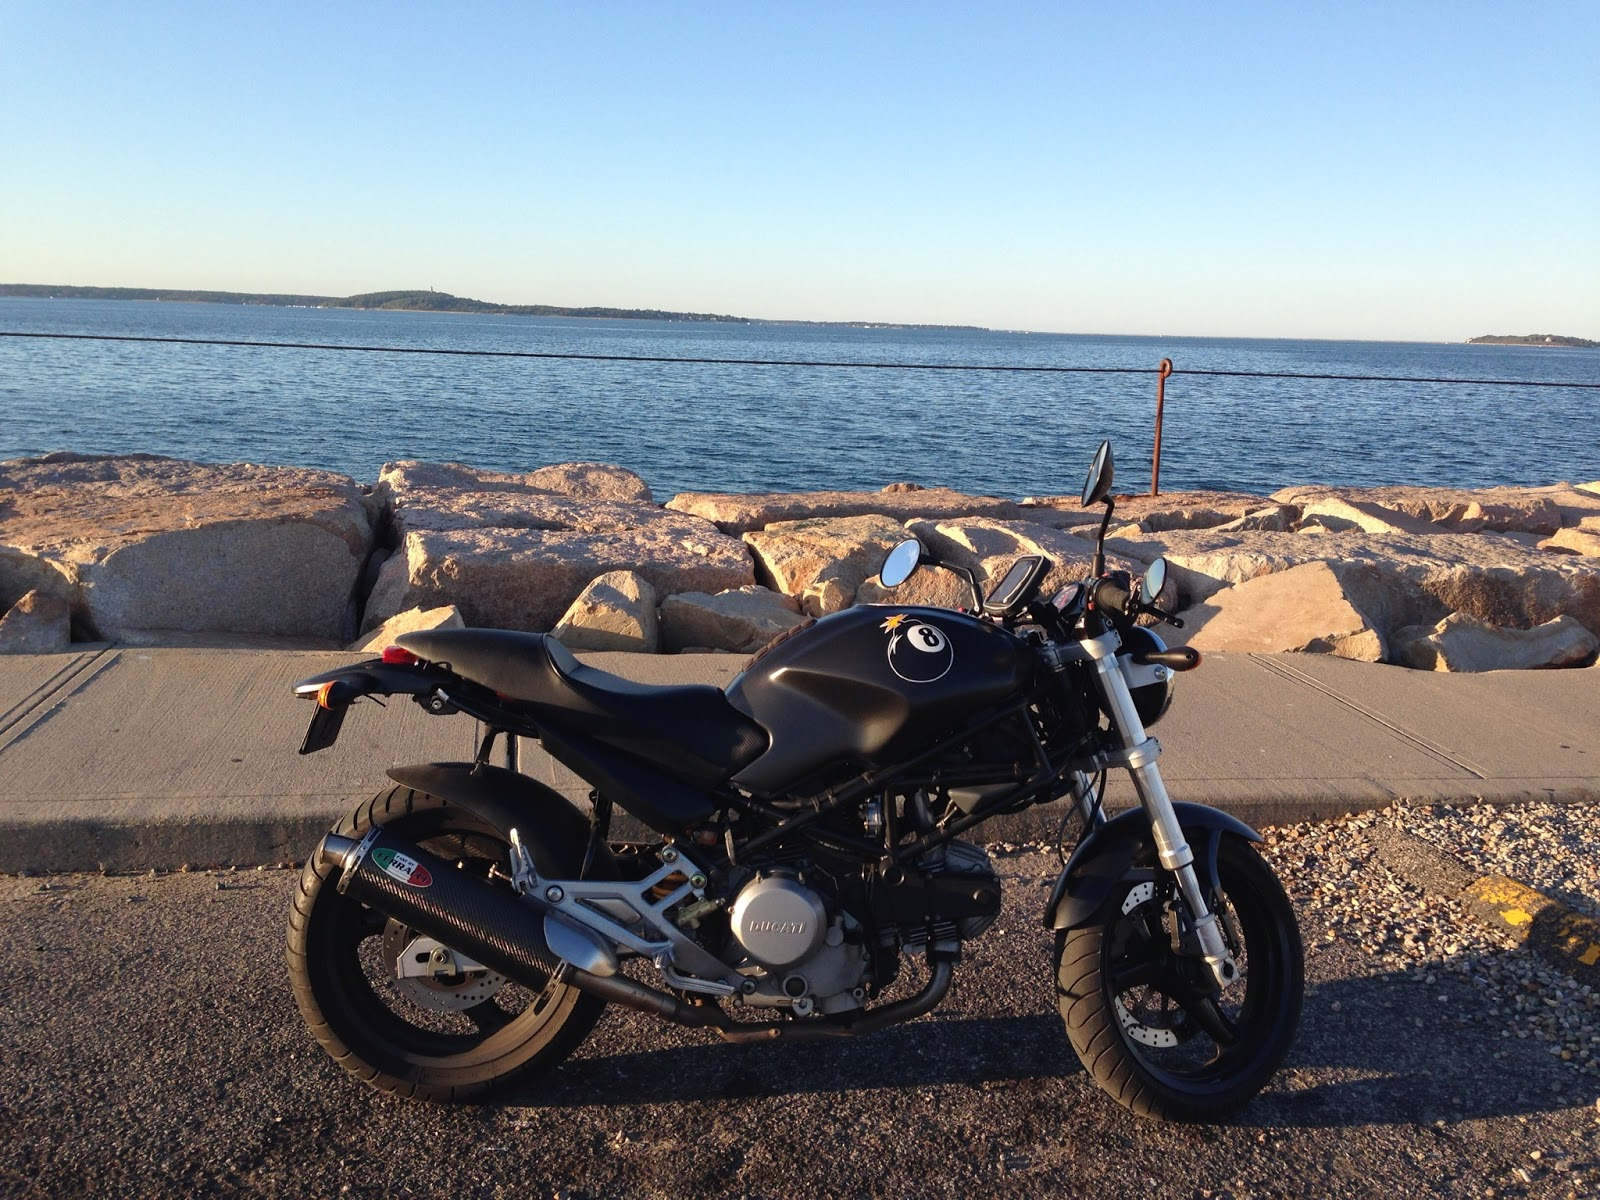 Boston Bay: NYDucati Lands on Plymouth Rock, Plymouth Massachusetts on a Tigho Ducati Trip.